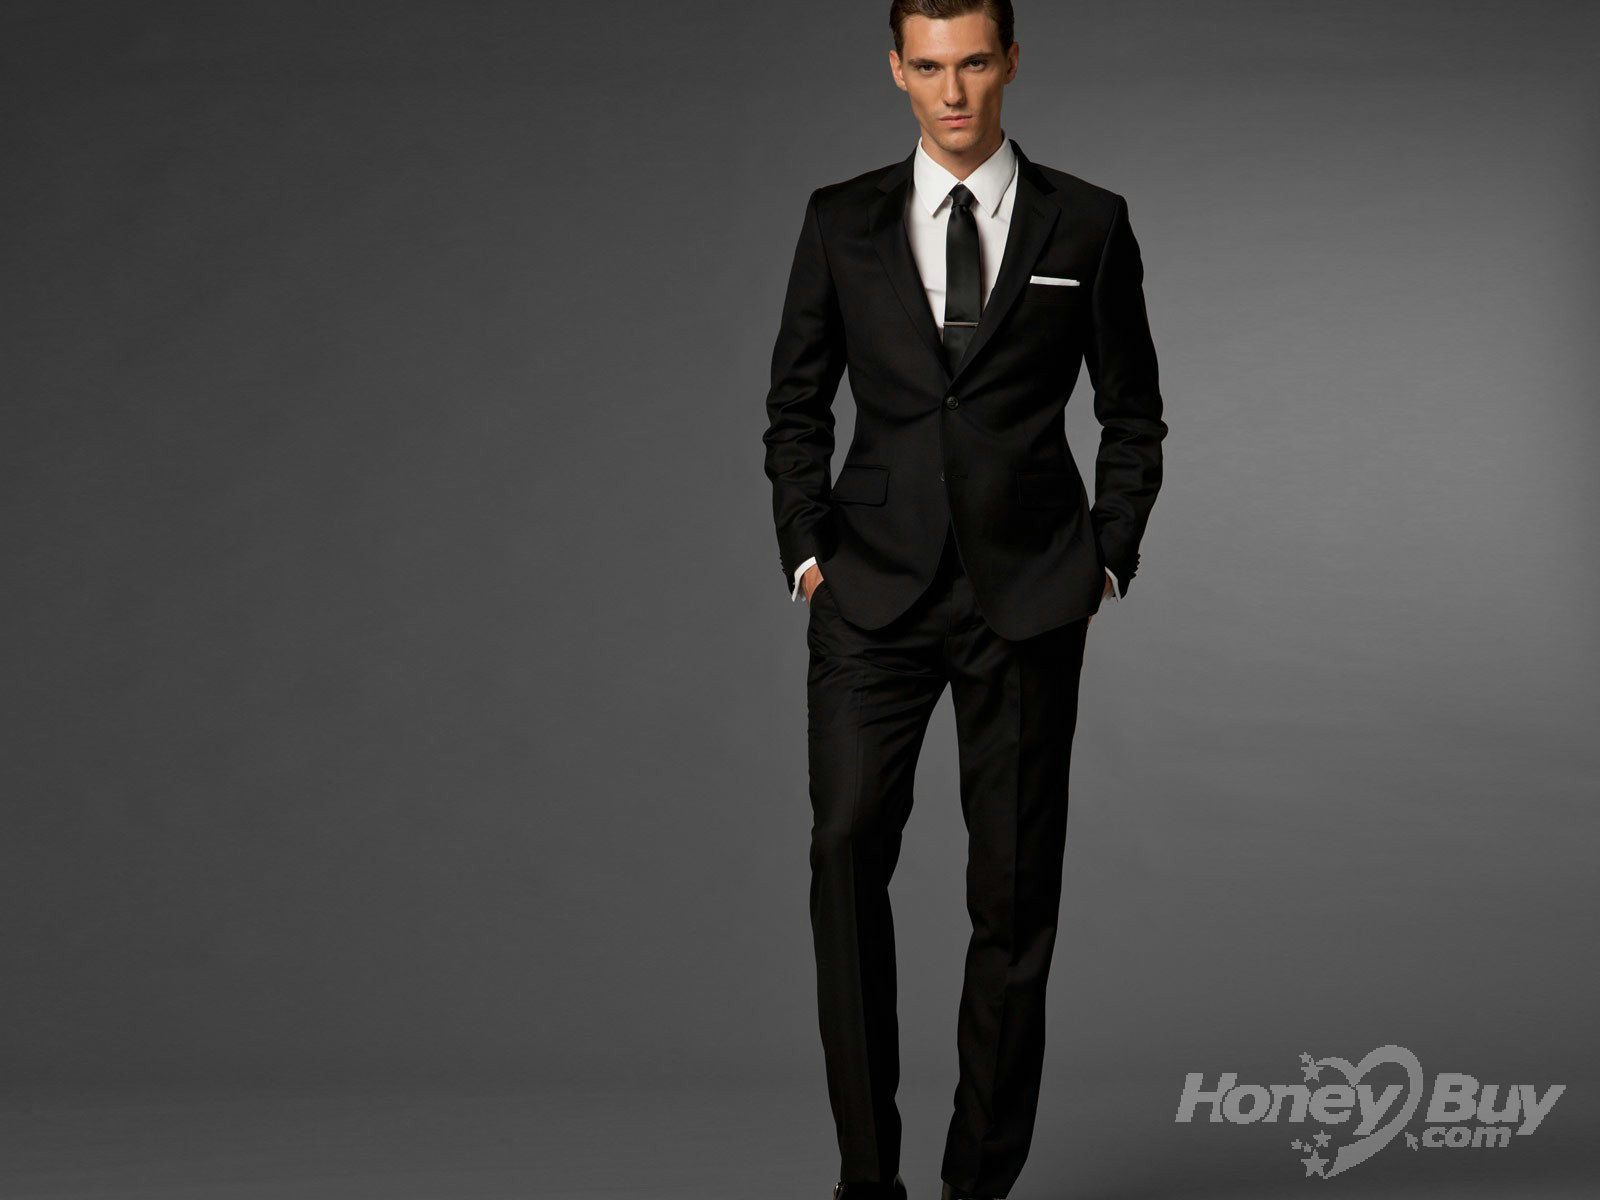 COLLECTIONS OF SUIT TO WEAR AS A GROOM AS THE GROOM YOU HAVE TO